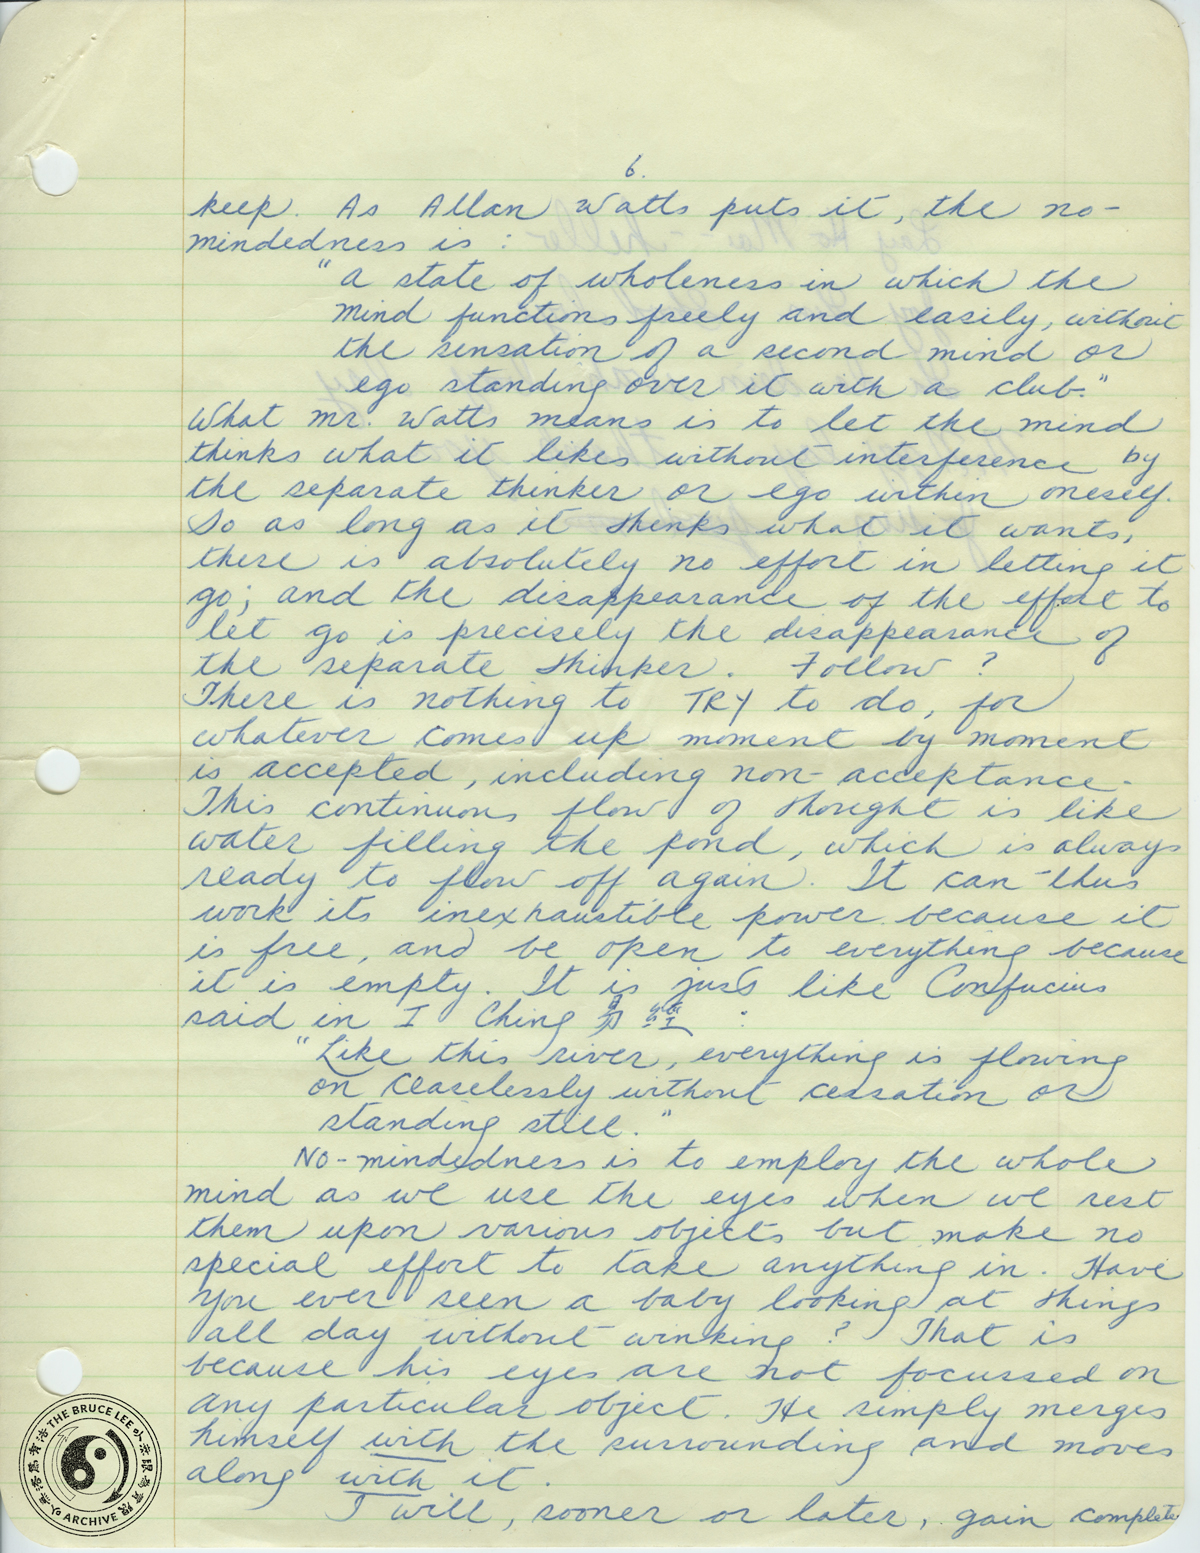 Letter-to-Pearl-draft-pg.6-archive.jpg